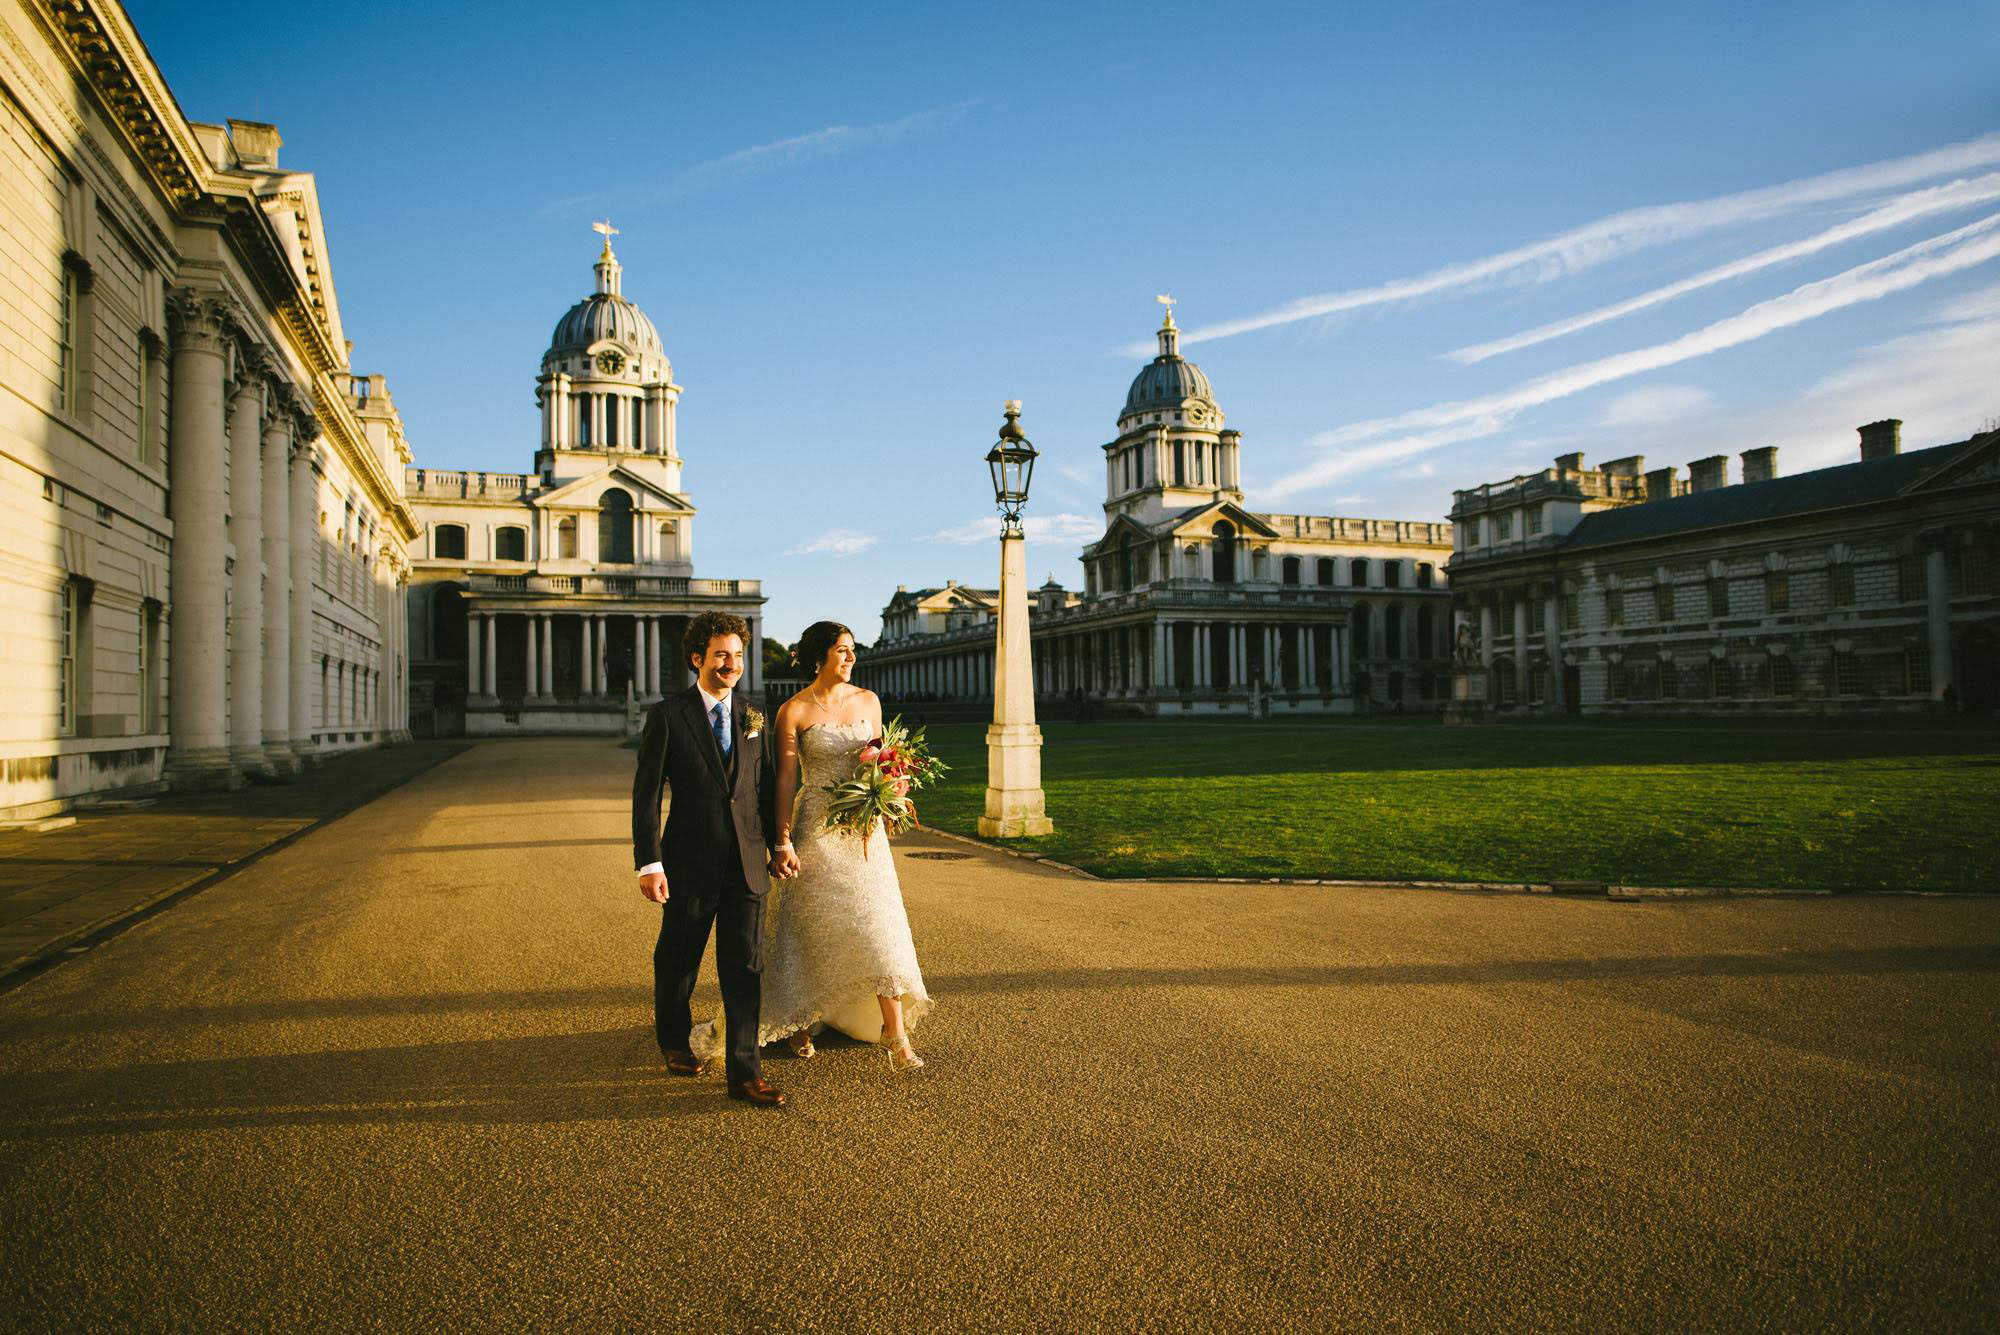 London wedding photography at the Old Royal Naval College - Isabel and Ross